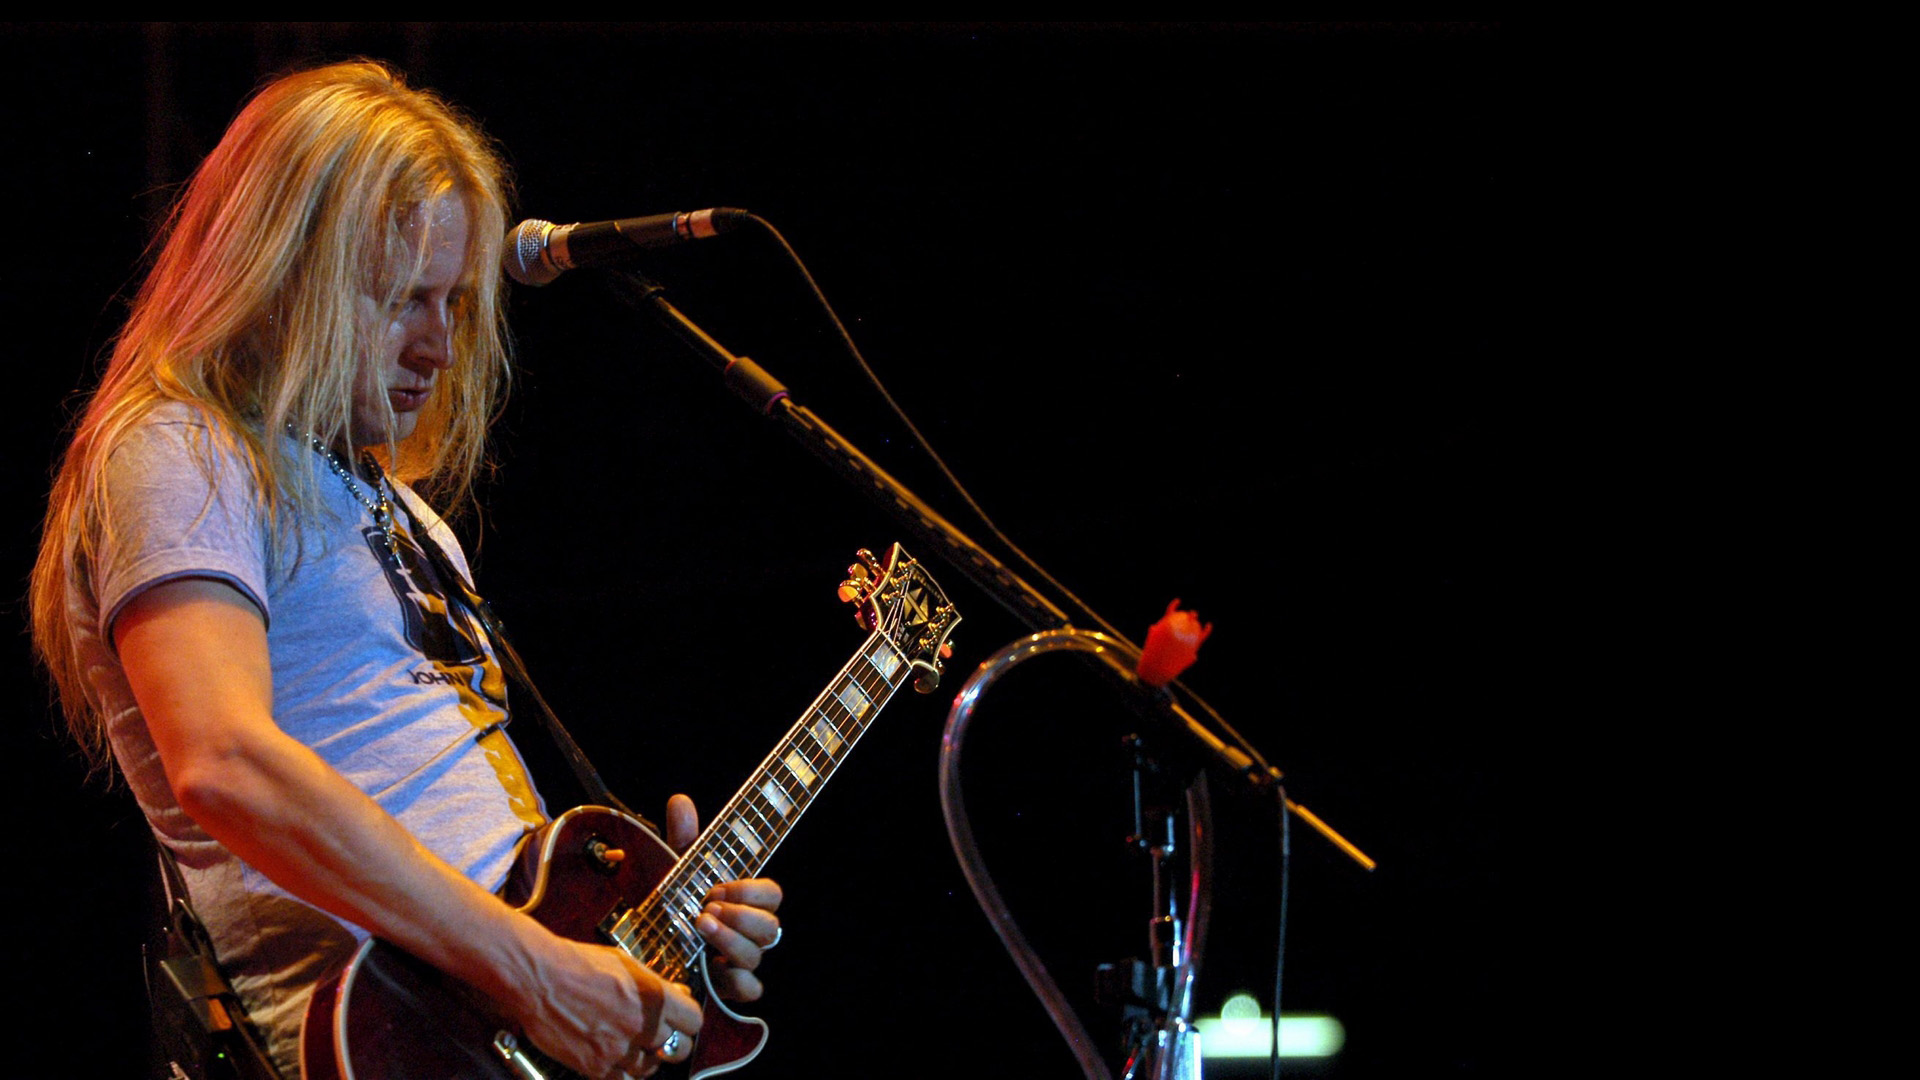 Jerry Cantrell HD Wallpaper Background Image 1920x1080 ID 1920x1080